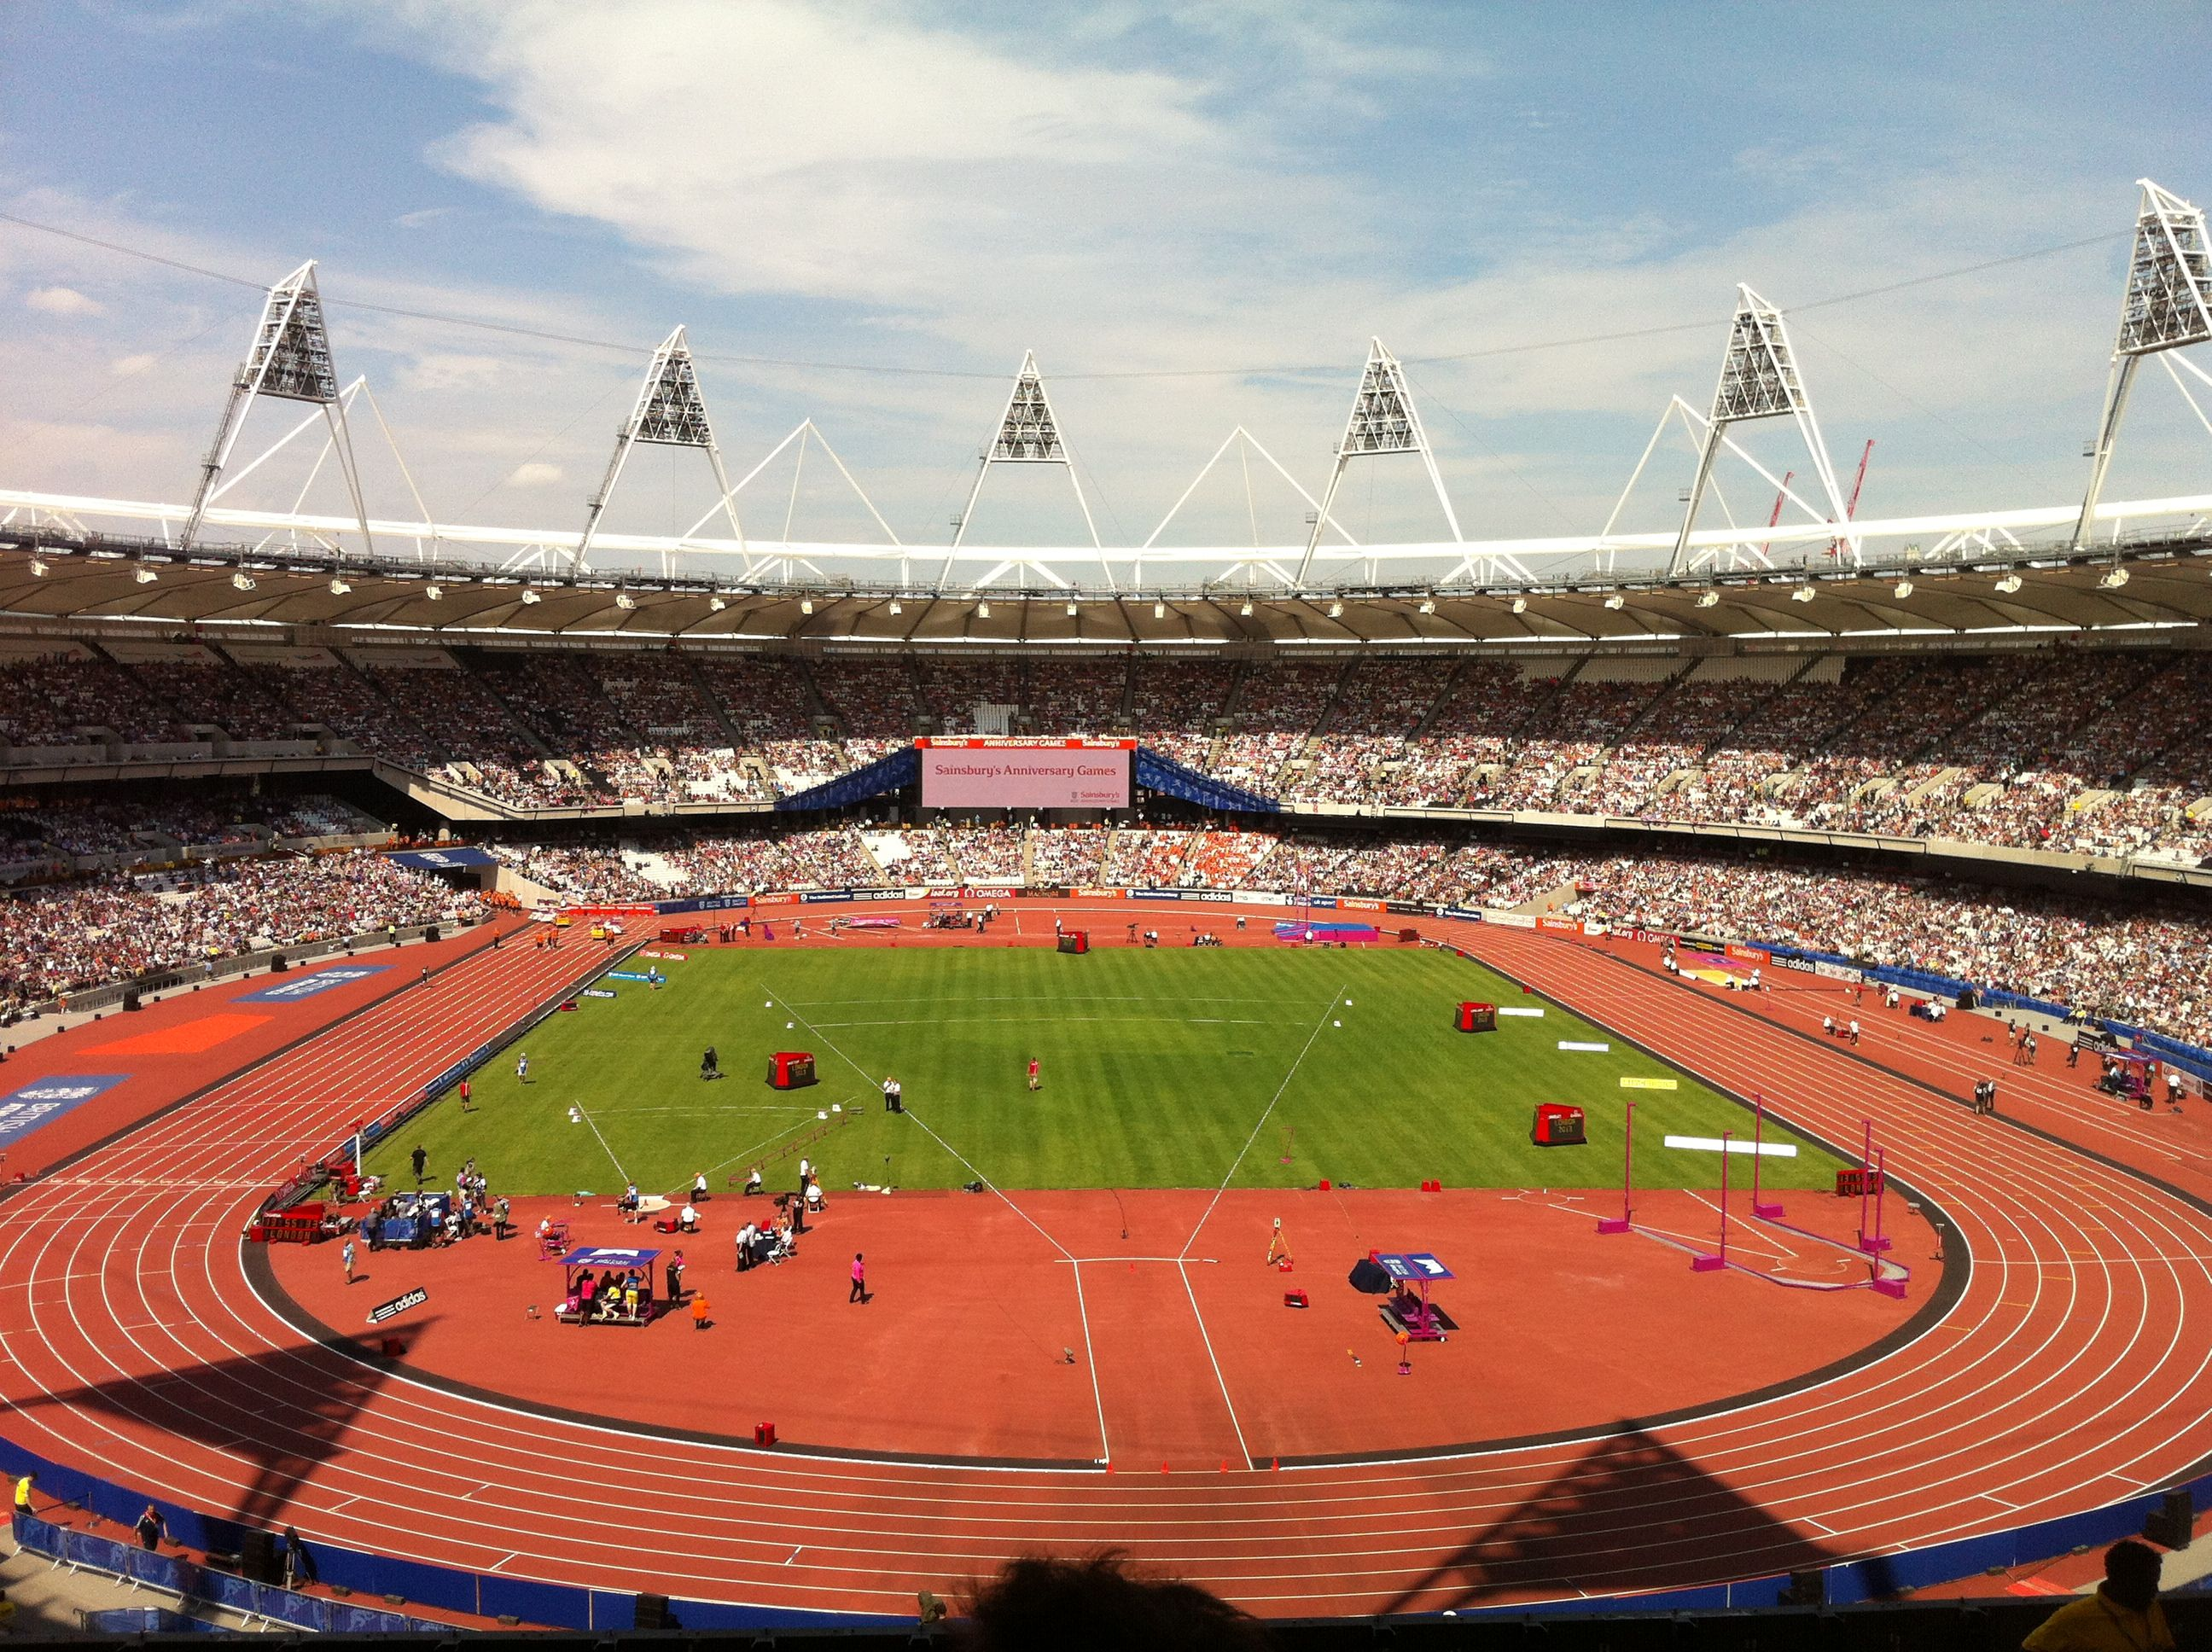 Back at the Olympic park for the anniversary games 2013